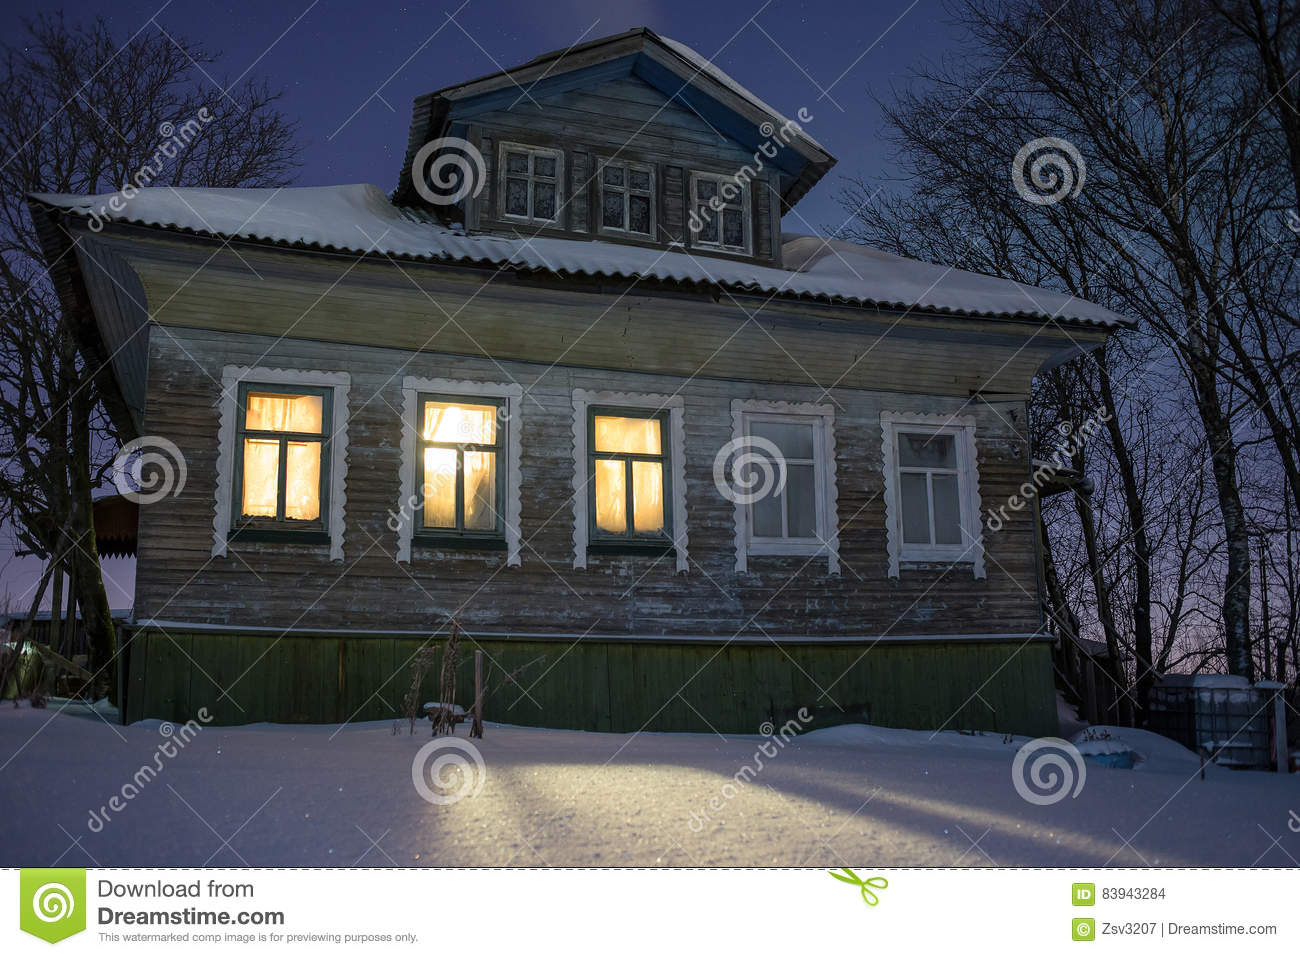 Warm Light From Windows Ofcozy Old Russian Village House